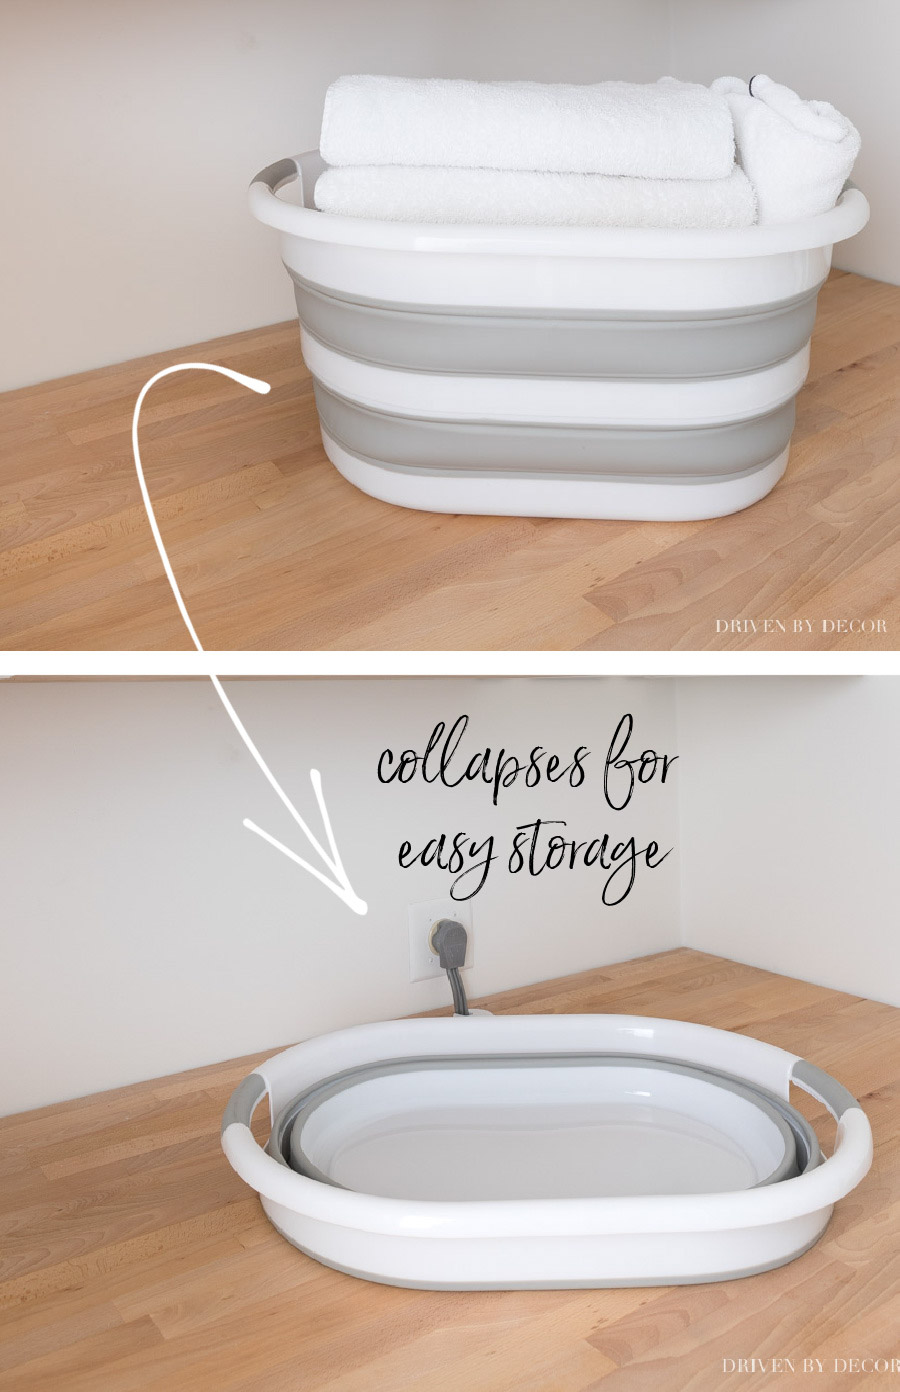 So smart for college dorms - a collapsible laundry basket!